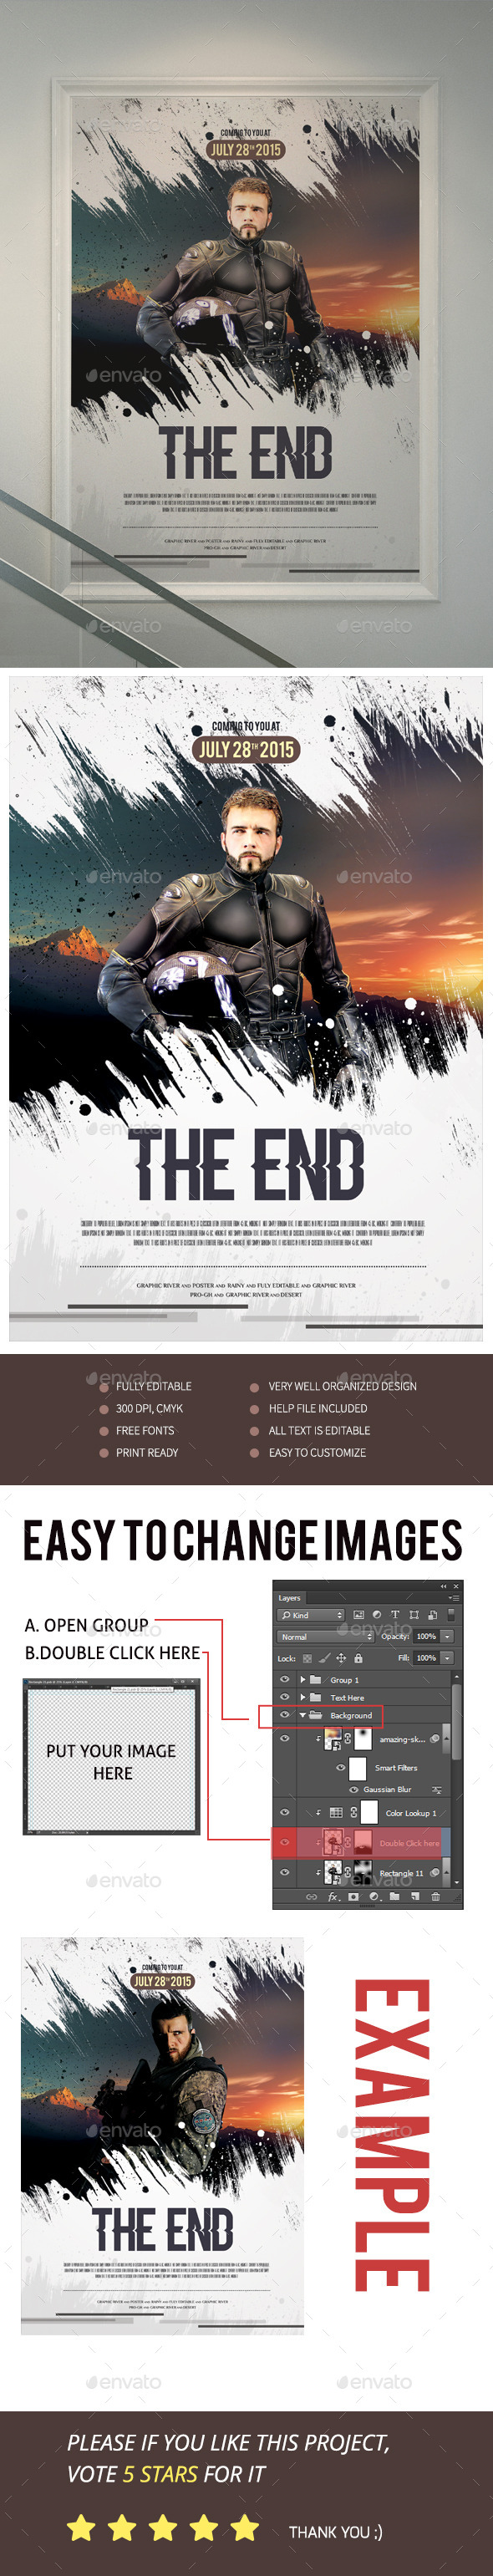 Editable movie poster templates